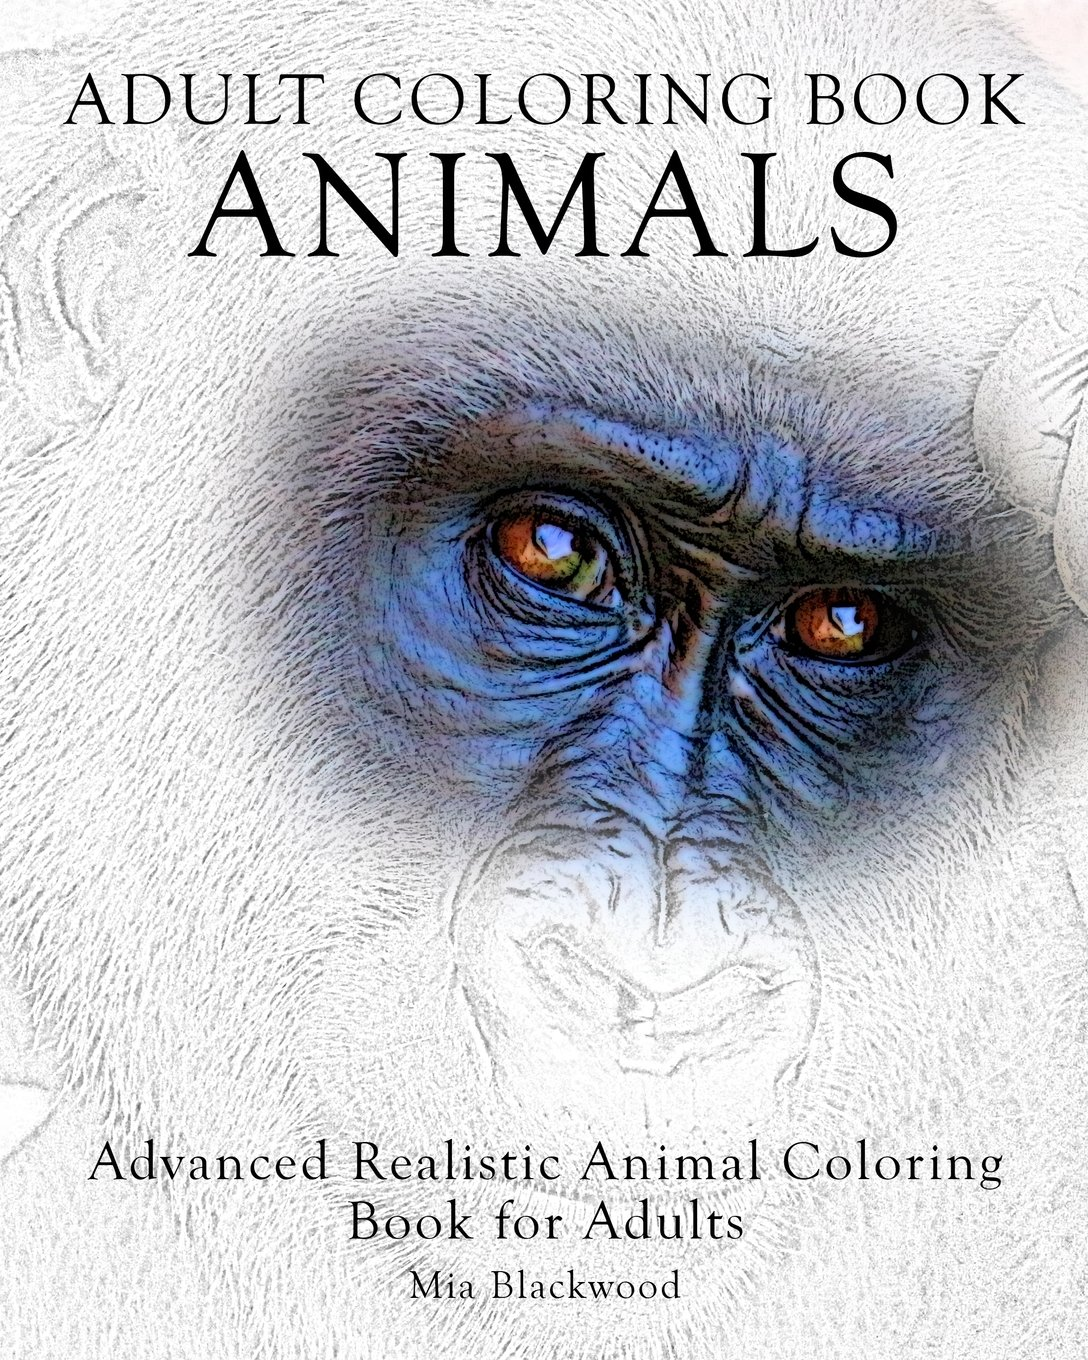 Animal kingdom coloring book gorilla - Amazon Com Adult Coloring Book Animals Advanced Realistic Animal Coloring Book For Adults Advanced Realistic Coloring Books Volume 1 9781519132284